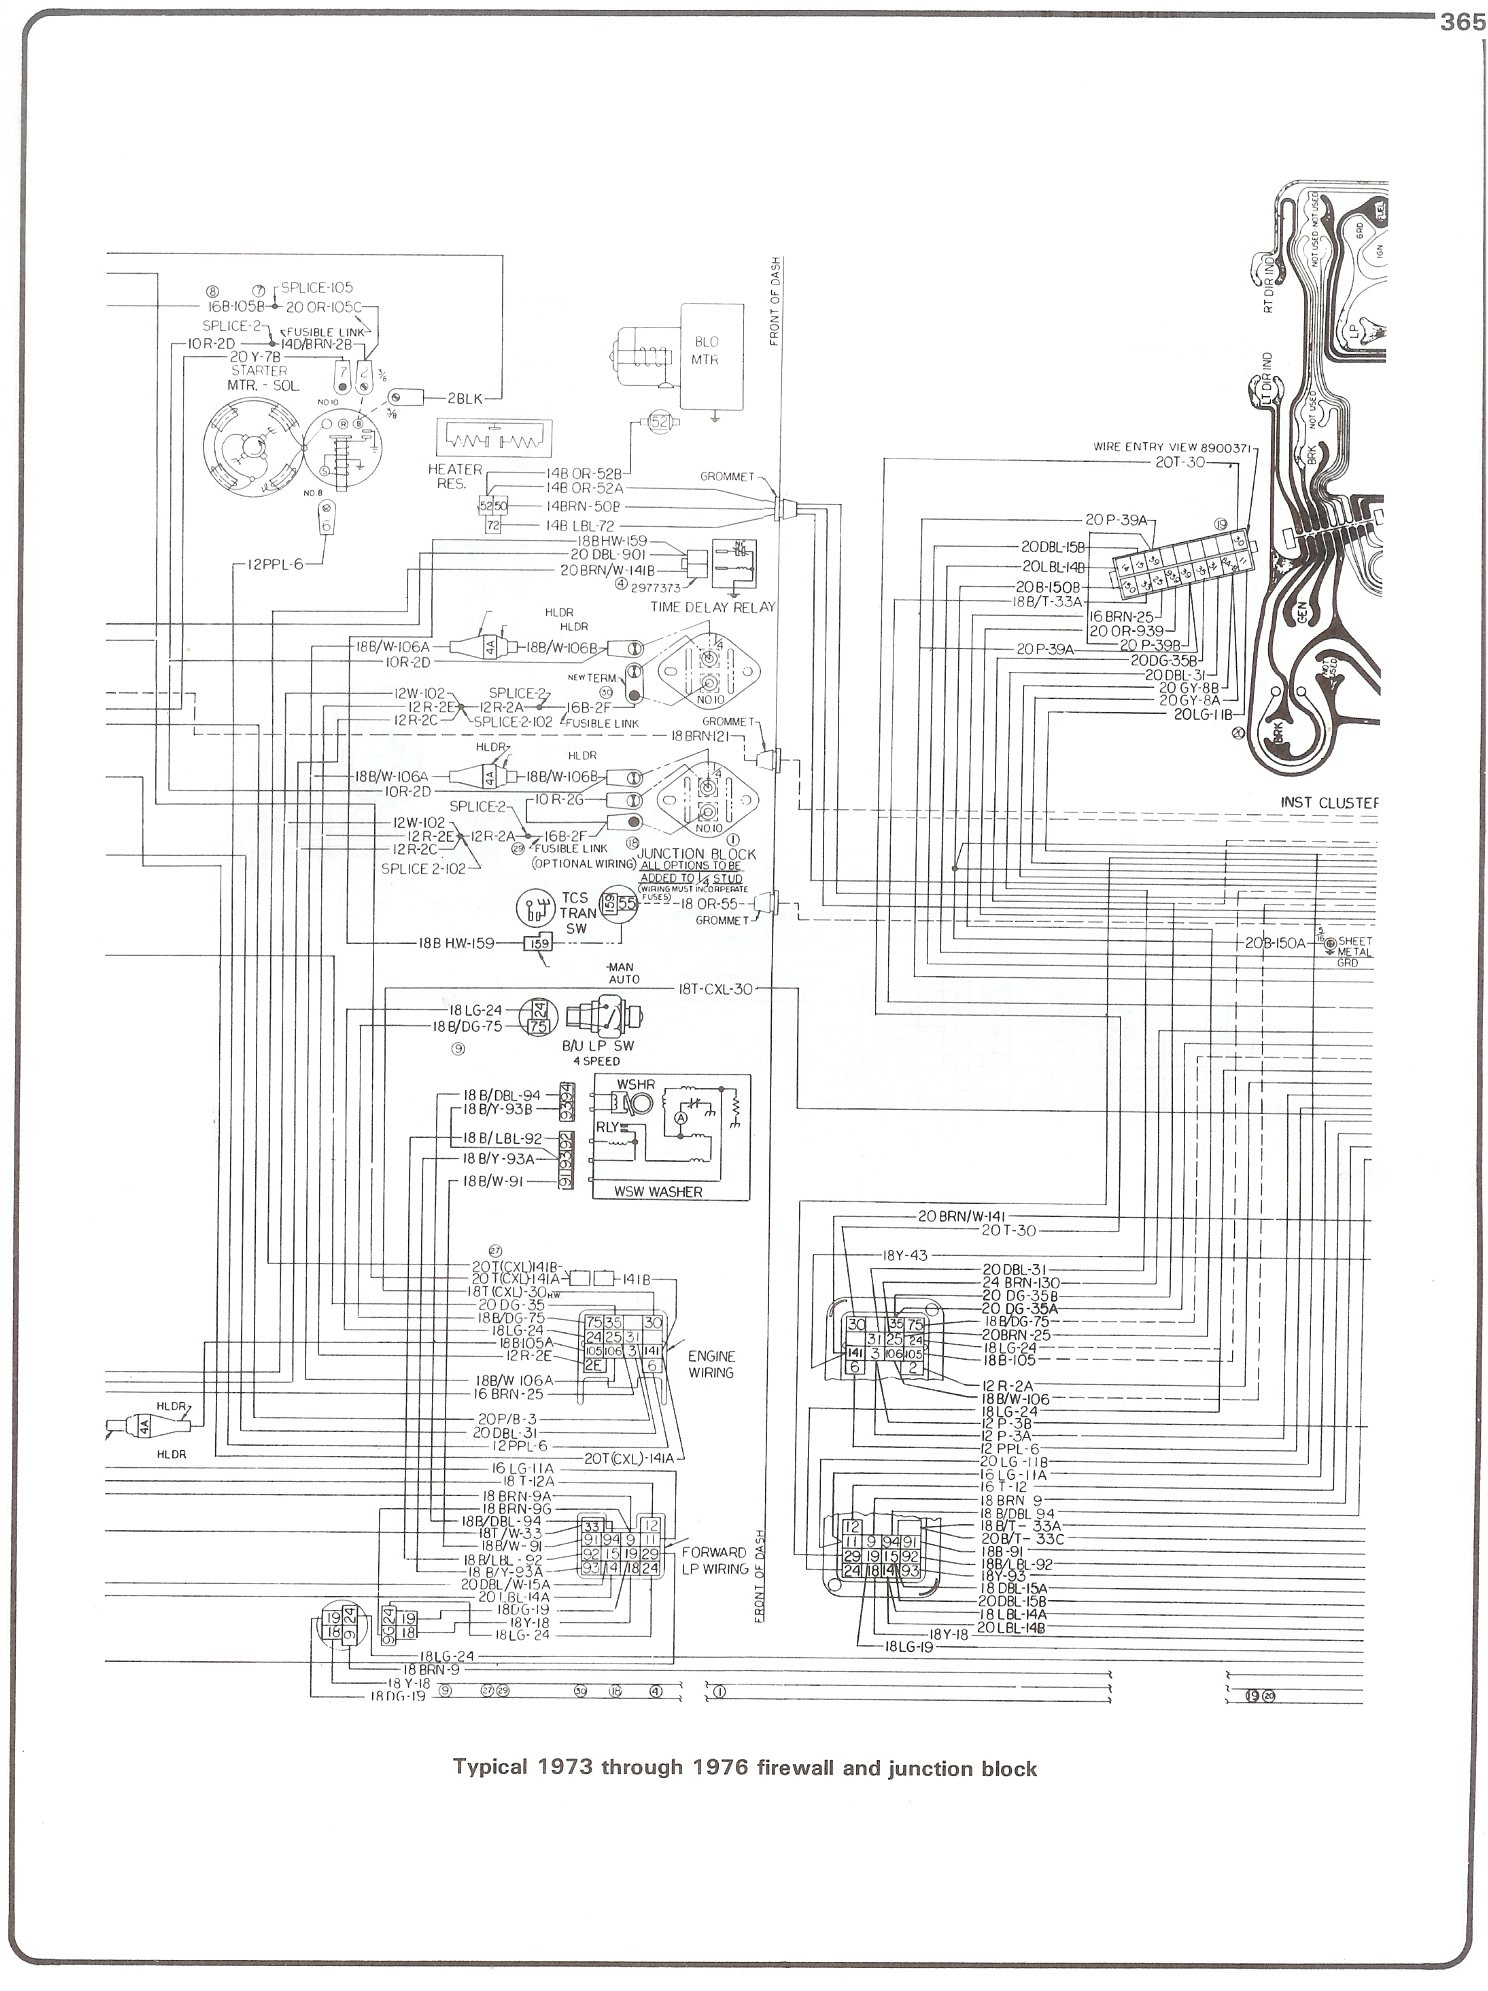 77 cj5 wiring diagram 77 gmc wiring diagram